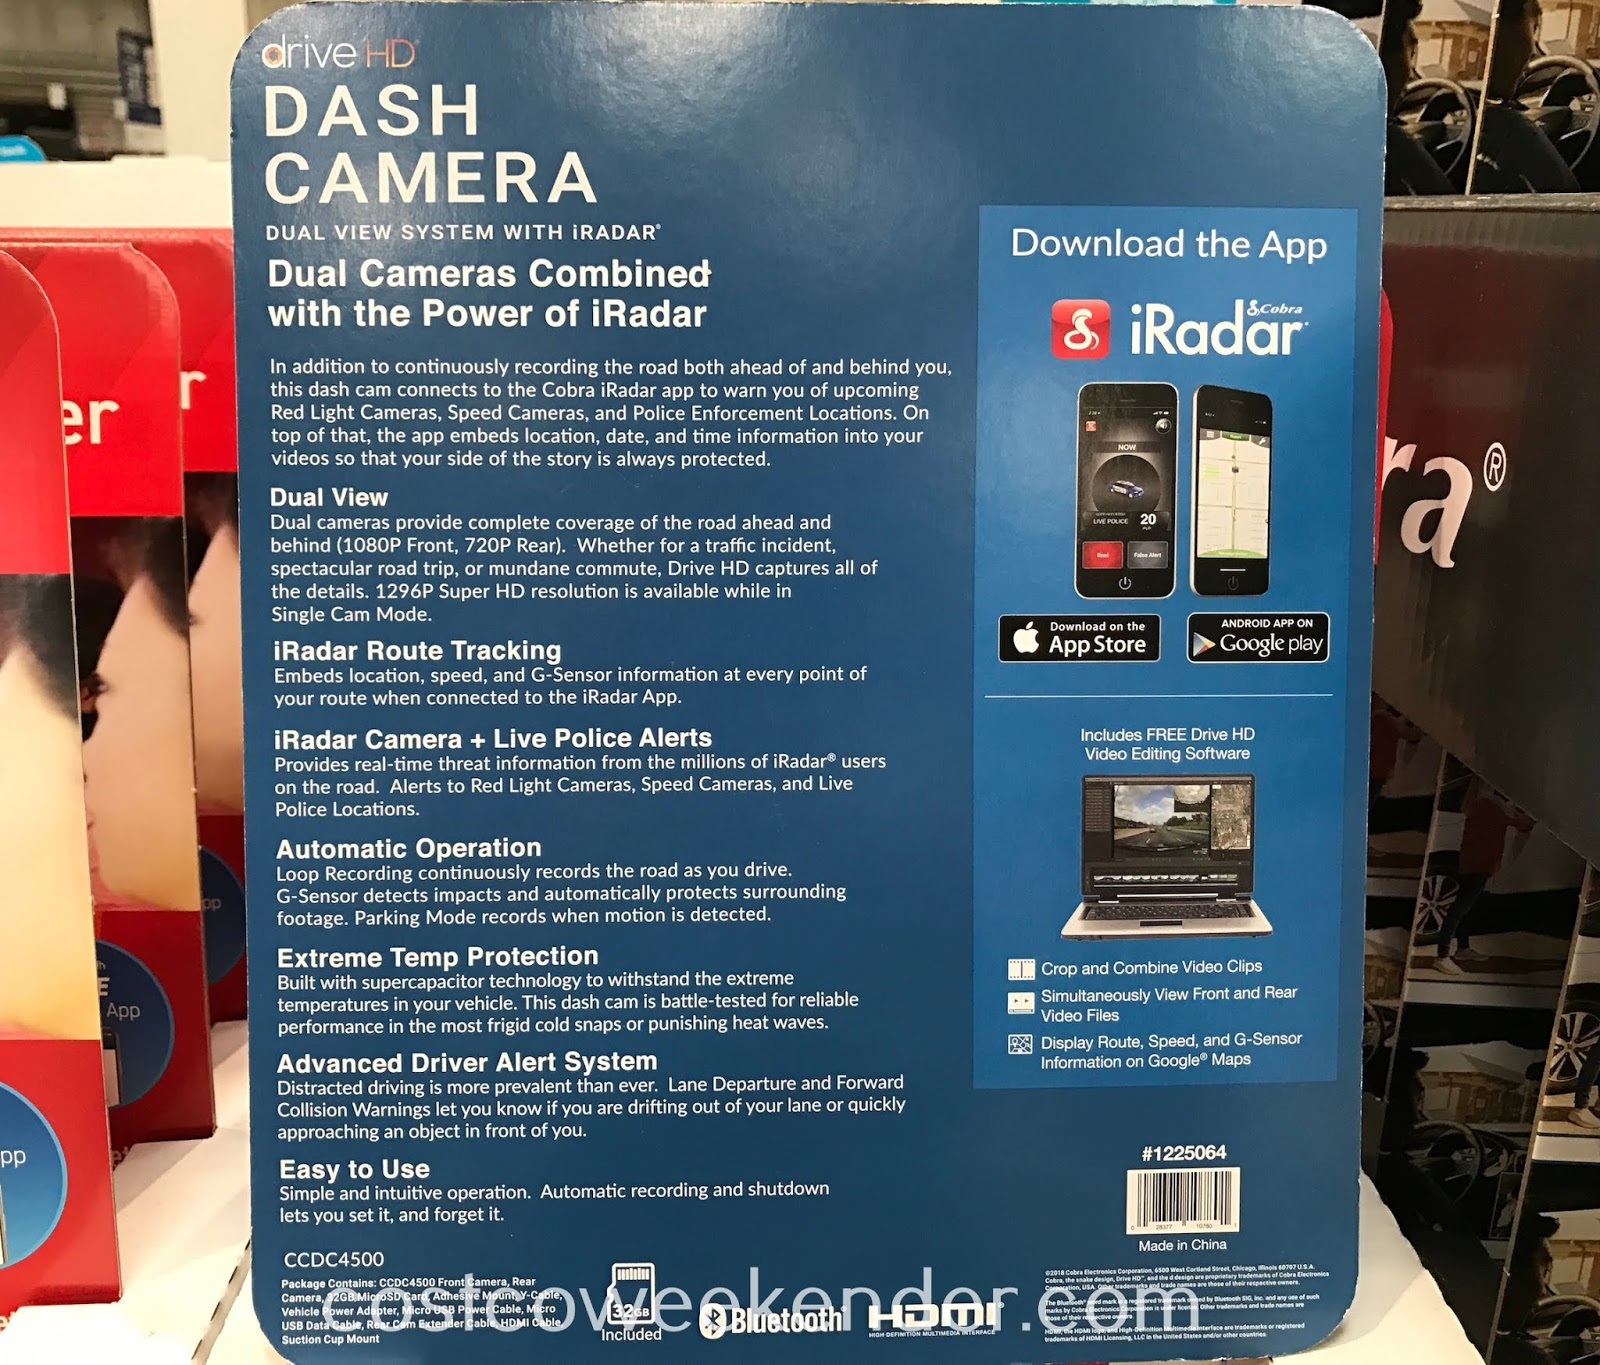 Costco 1225064 - Cobra Drive HD Dash Camera Dual View System: great for any car